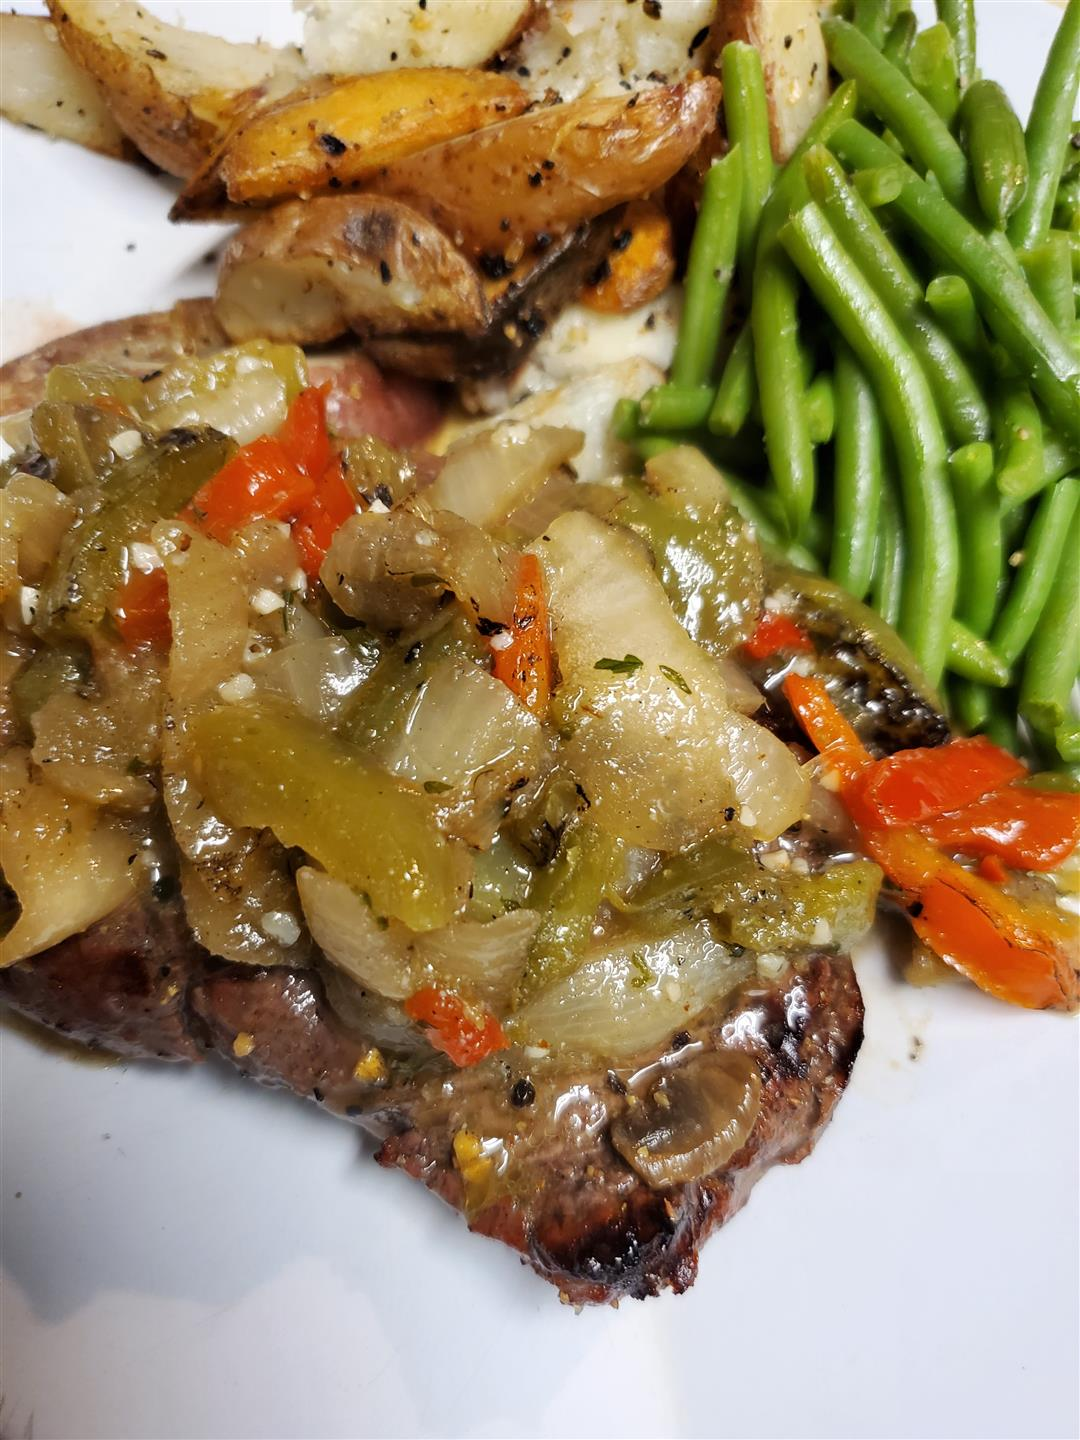 steak with peppers, onions, and side of green beas